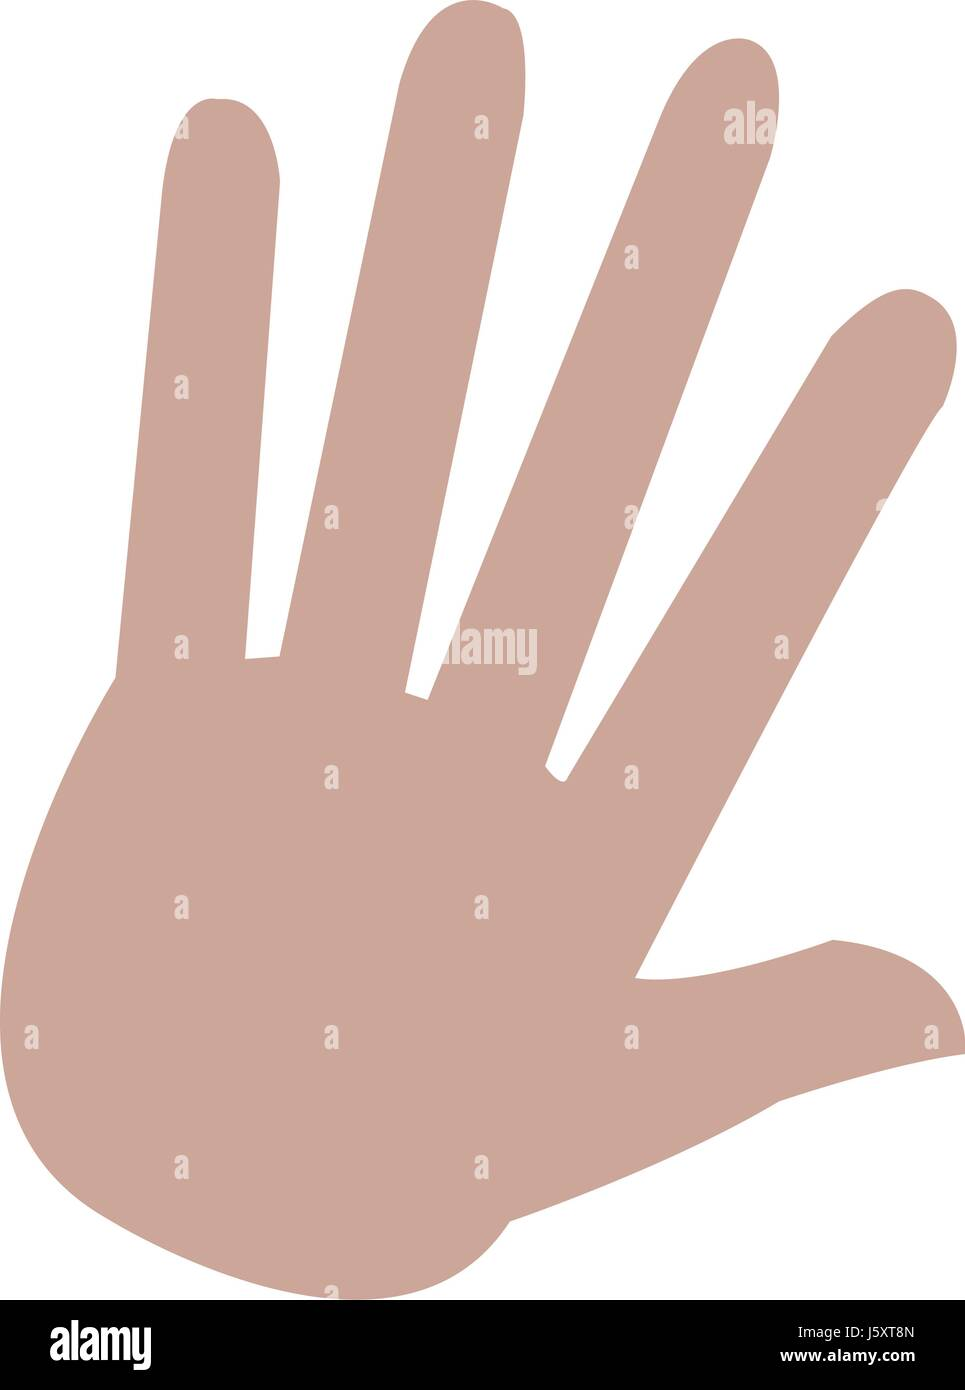 Hand Palm Human Symbol Style Stock Vector Art Illustration Vector